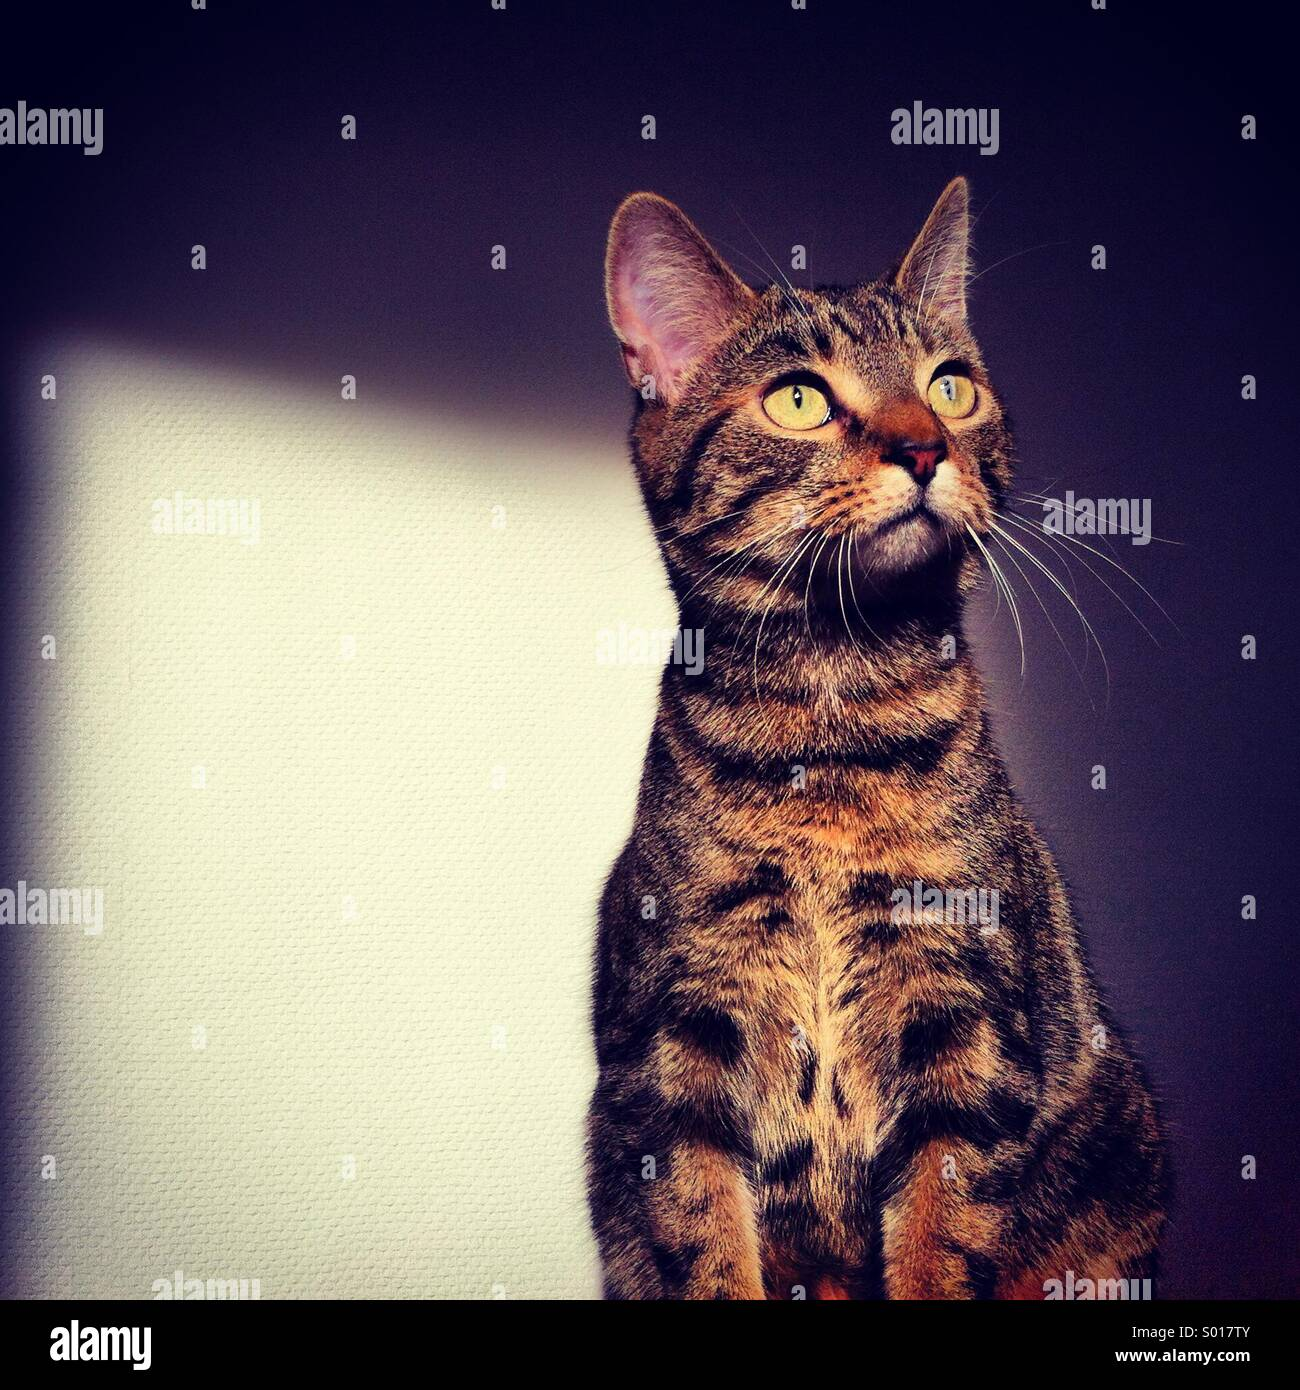 Domesticated young kitten tabby cat pet, sitting alert in sunlight at home. Stock Photo